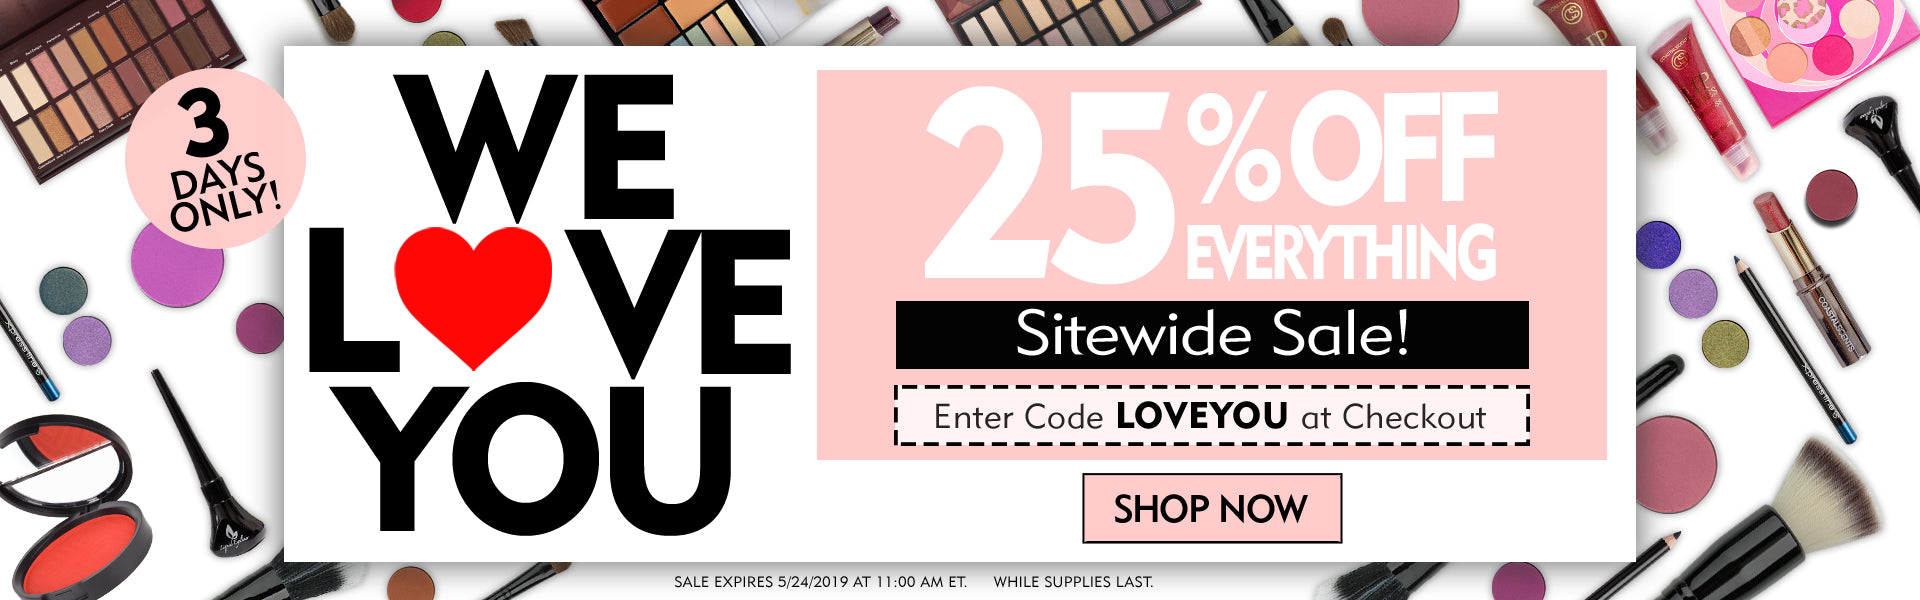 WE LOVE YOU - 25% OFF Everything Sitewide Sale! Enter Code LOVEYOU at checkout